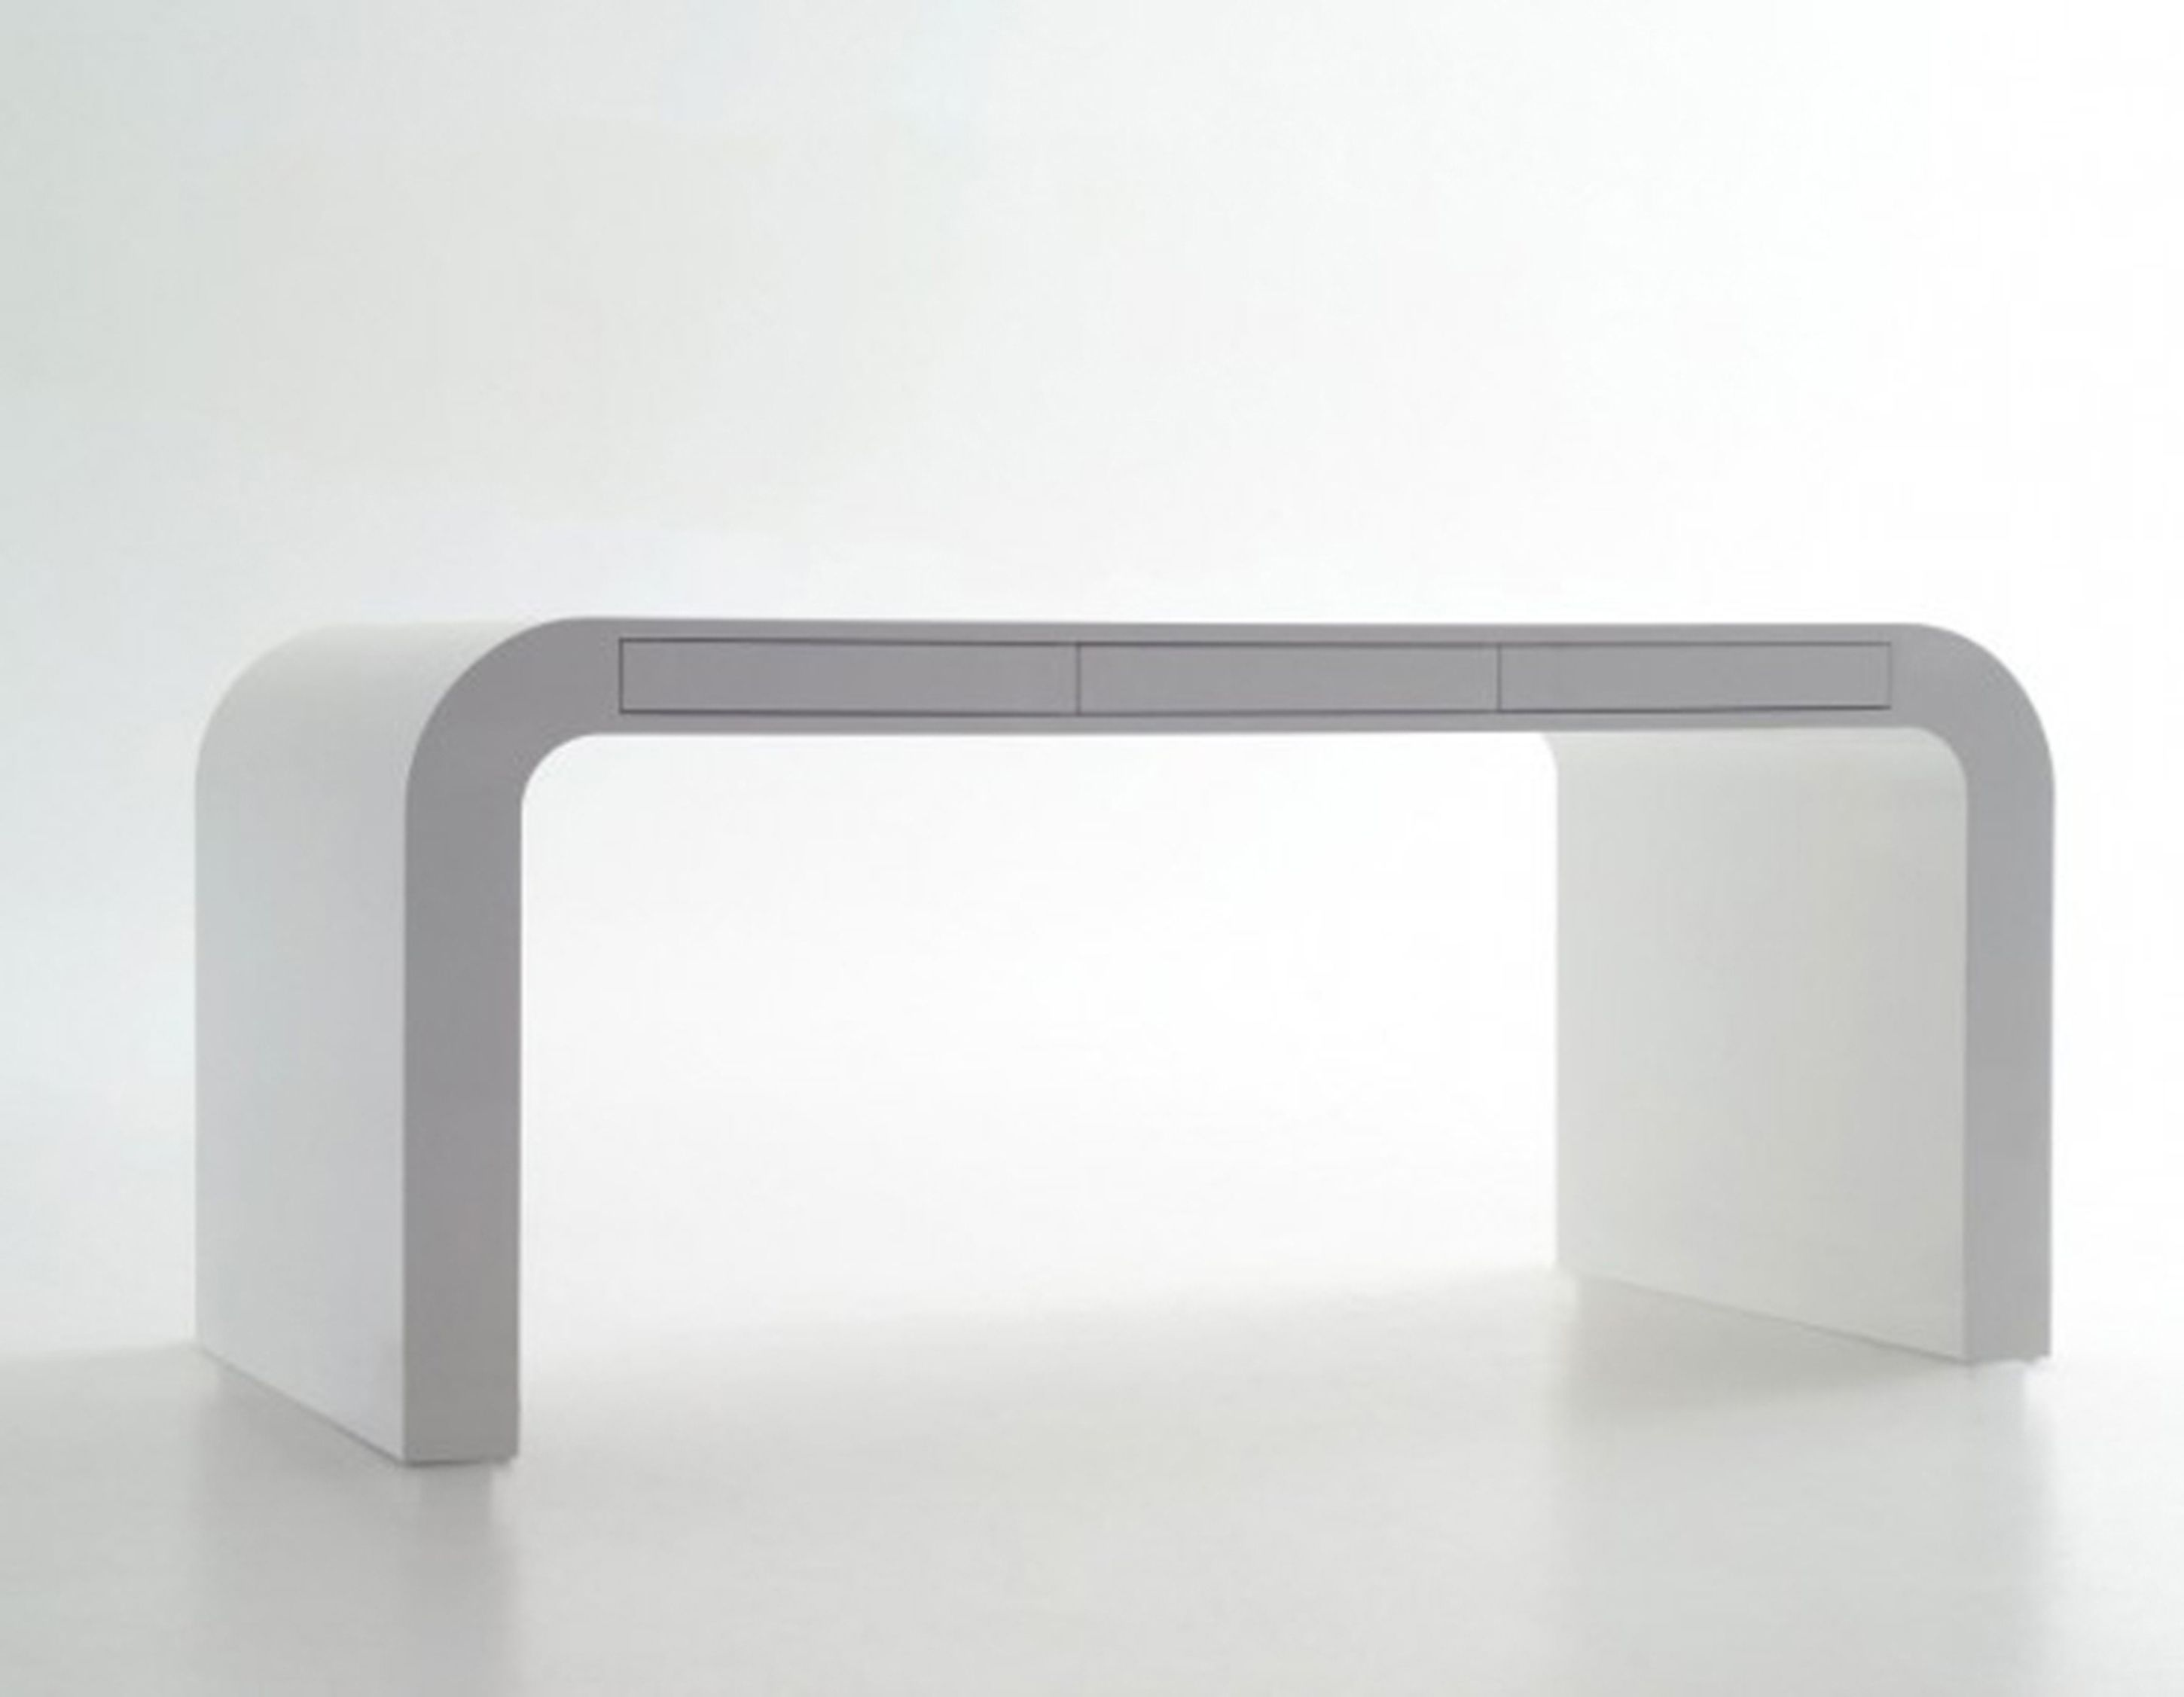 The Stylish White Office Desk Modern Safarihomedecor Is One Of Pictures That Are Related To Picture Before In Collection Gall